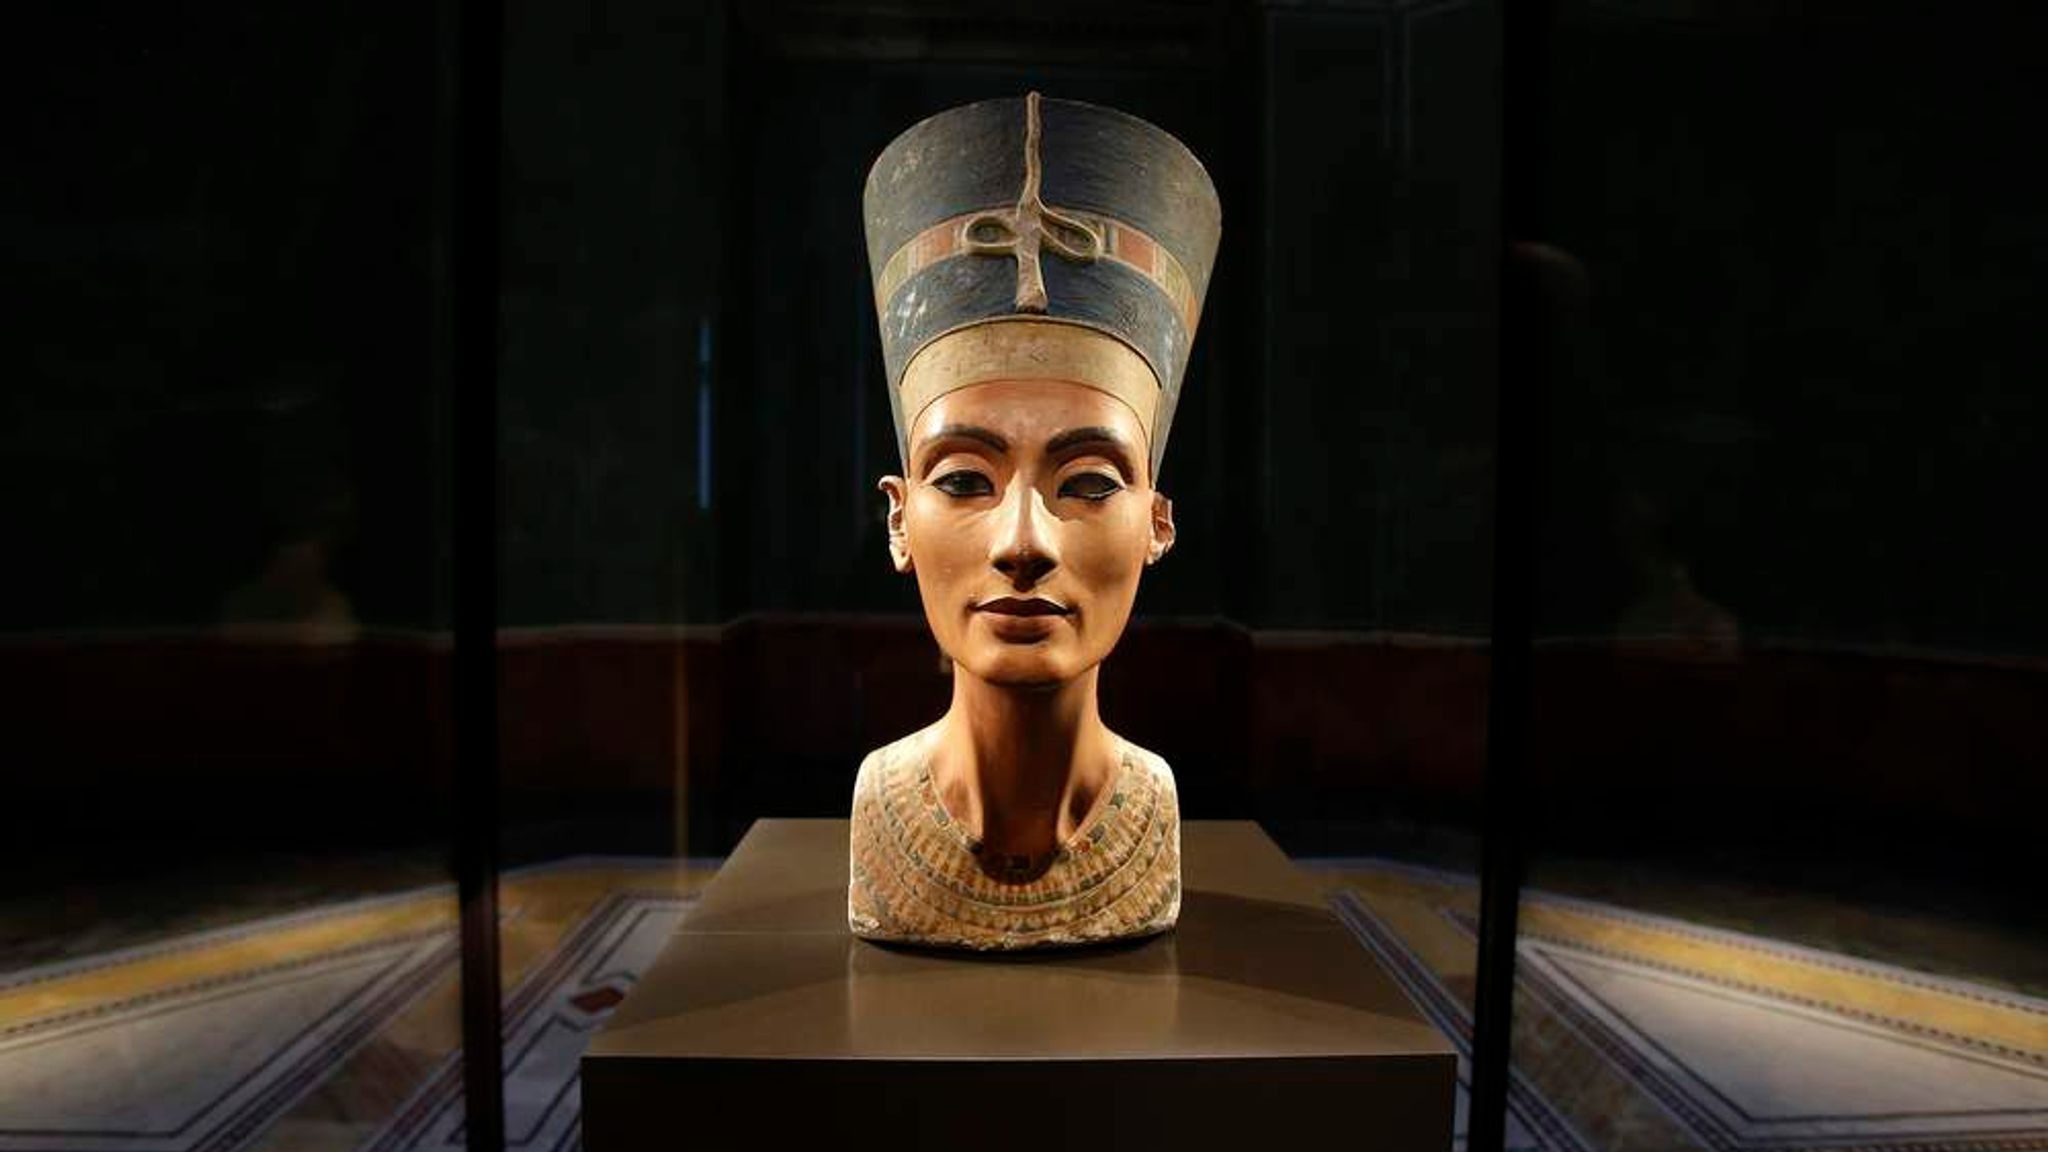 bust nefertiti rosicrucian egyptian museum Find best value and selection for your egyptian statue replica amarna queen nefertiti bust search on ebay world's leading marketplace.